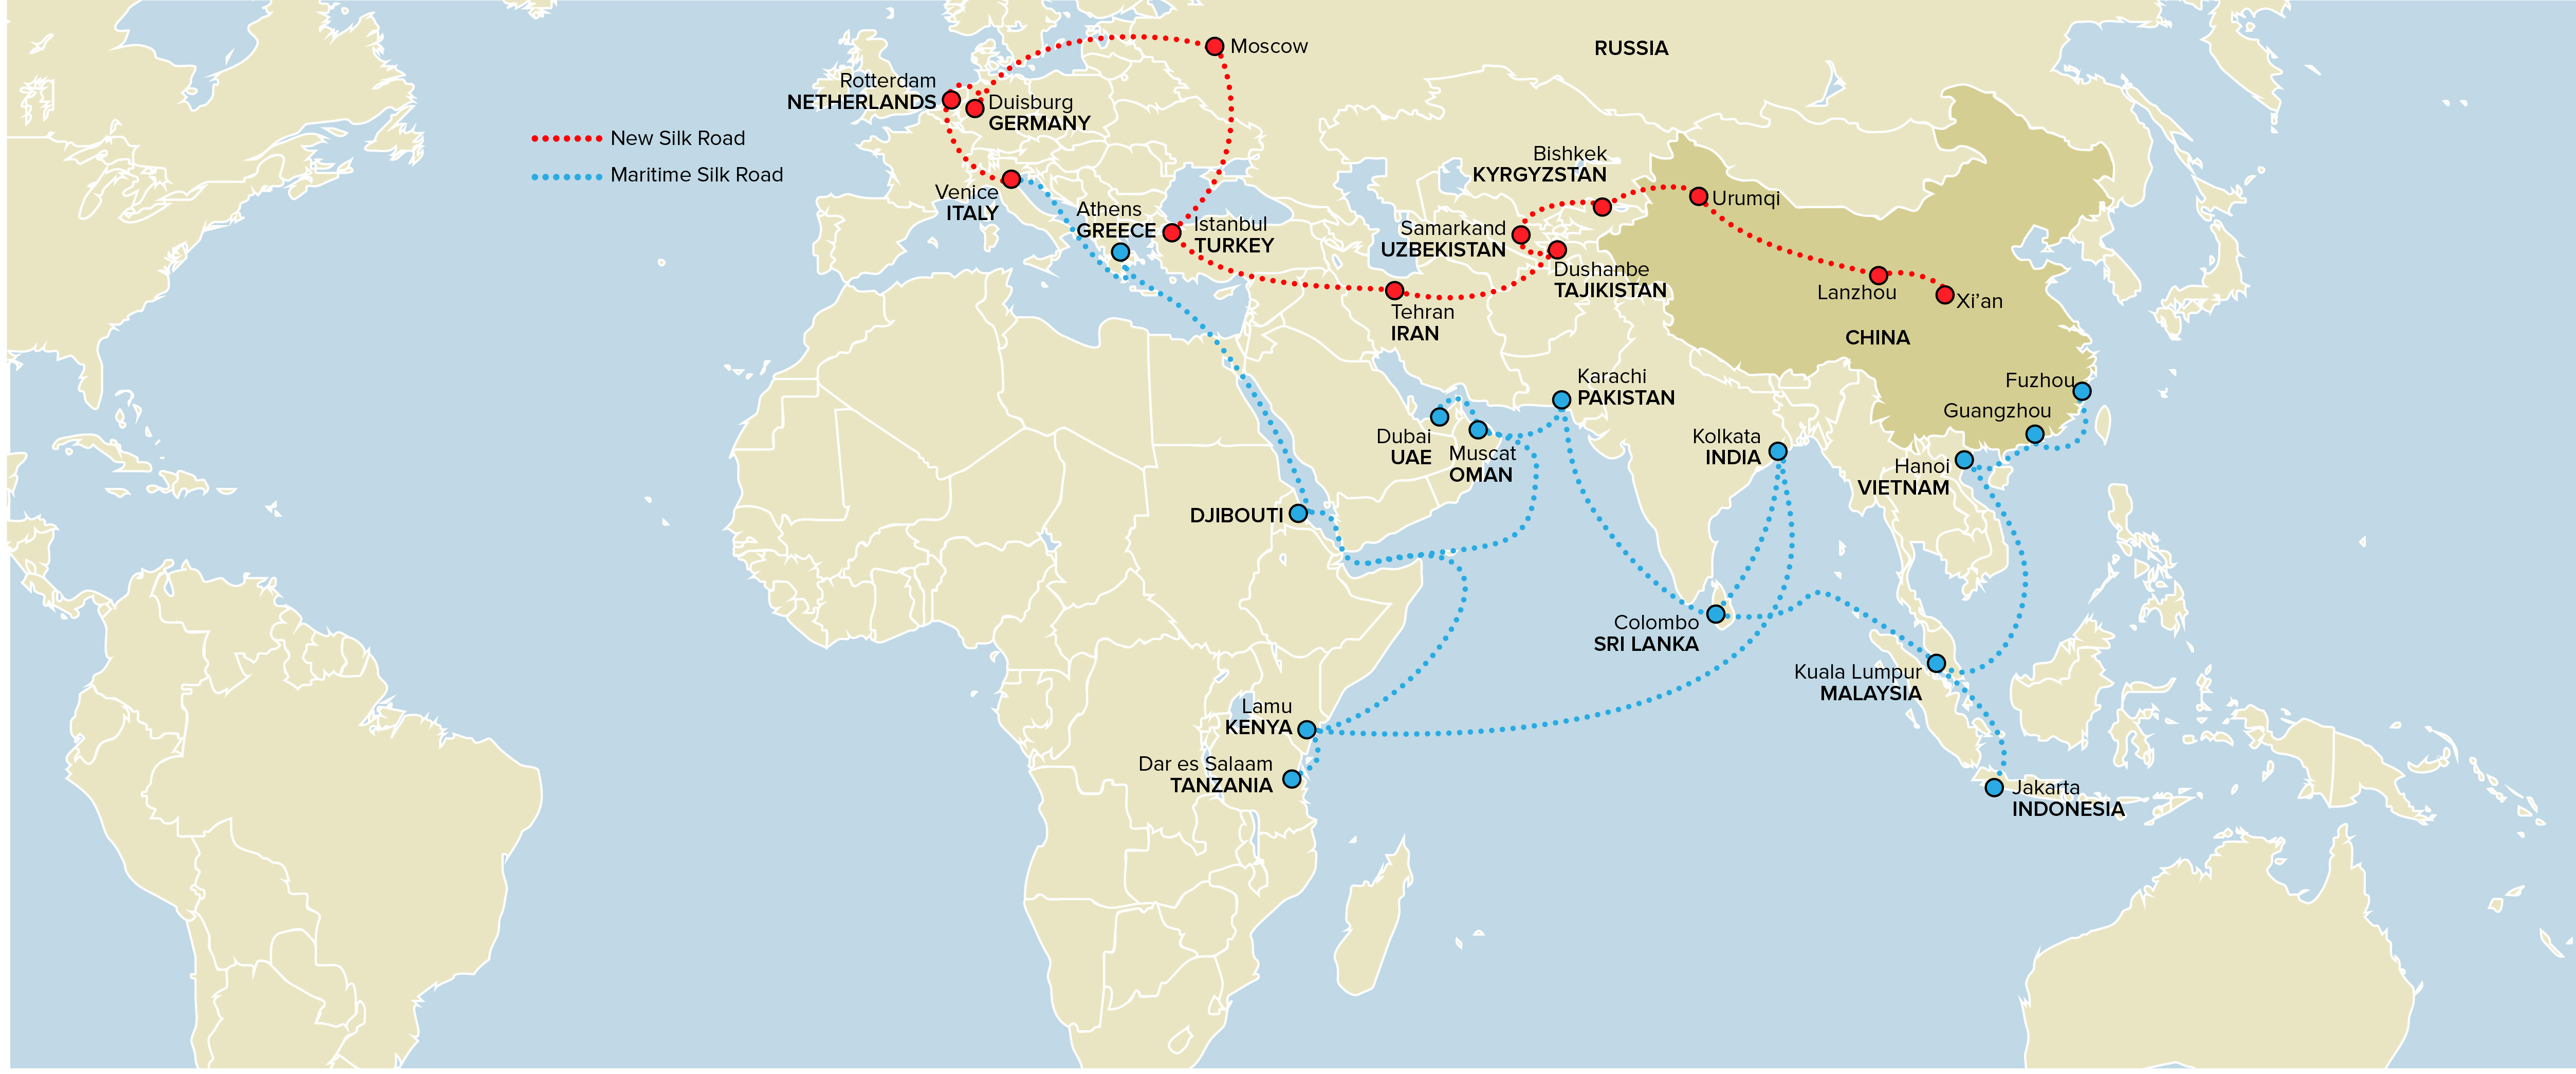 Slovenian Minister Bratusek Visited China To Talk The Importance Of The Initiative For The New Silk Road And The One Belt One Road Initiative On The Mos Way